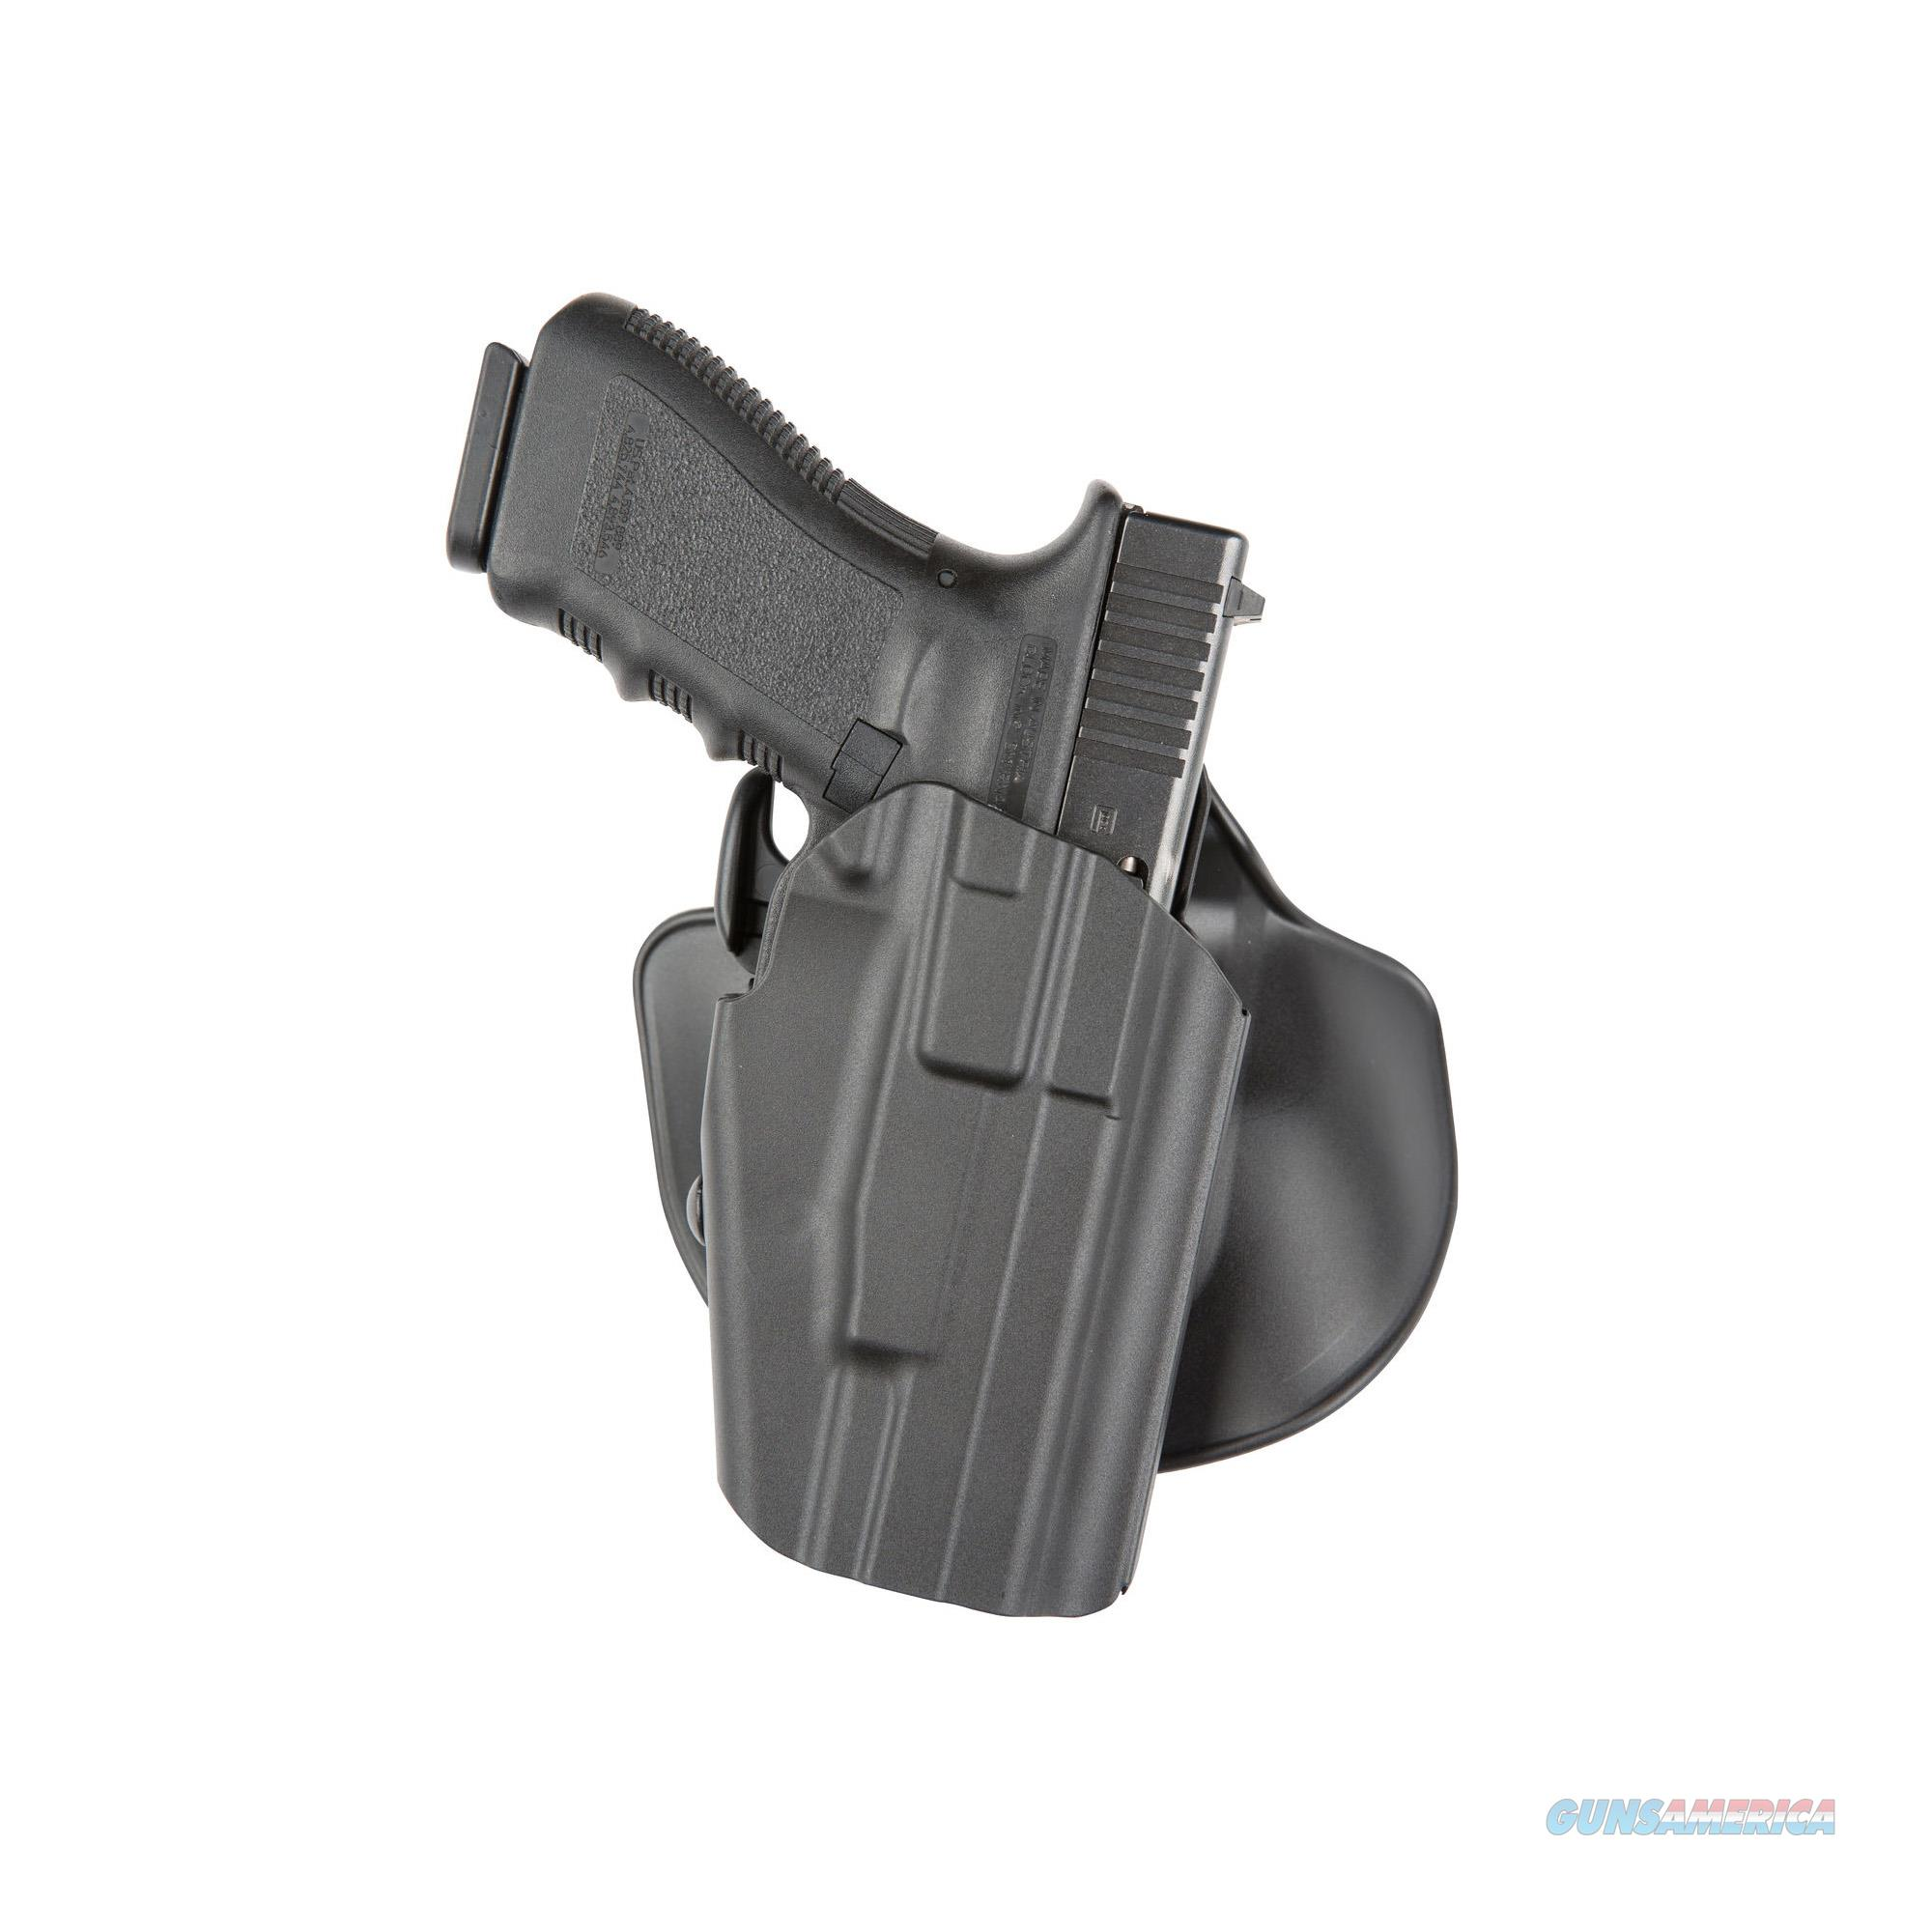 Safariland Model 578 GLS™ Pro-Fit™ Holster (with Paddle and Belt Slide) – Standard, Left Draw  Non-Guns > Holsters and Gunleather > Concealed Carry